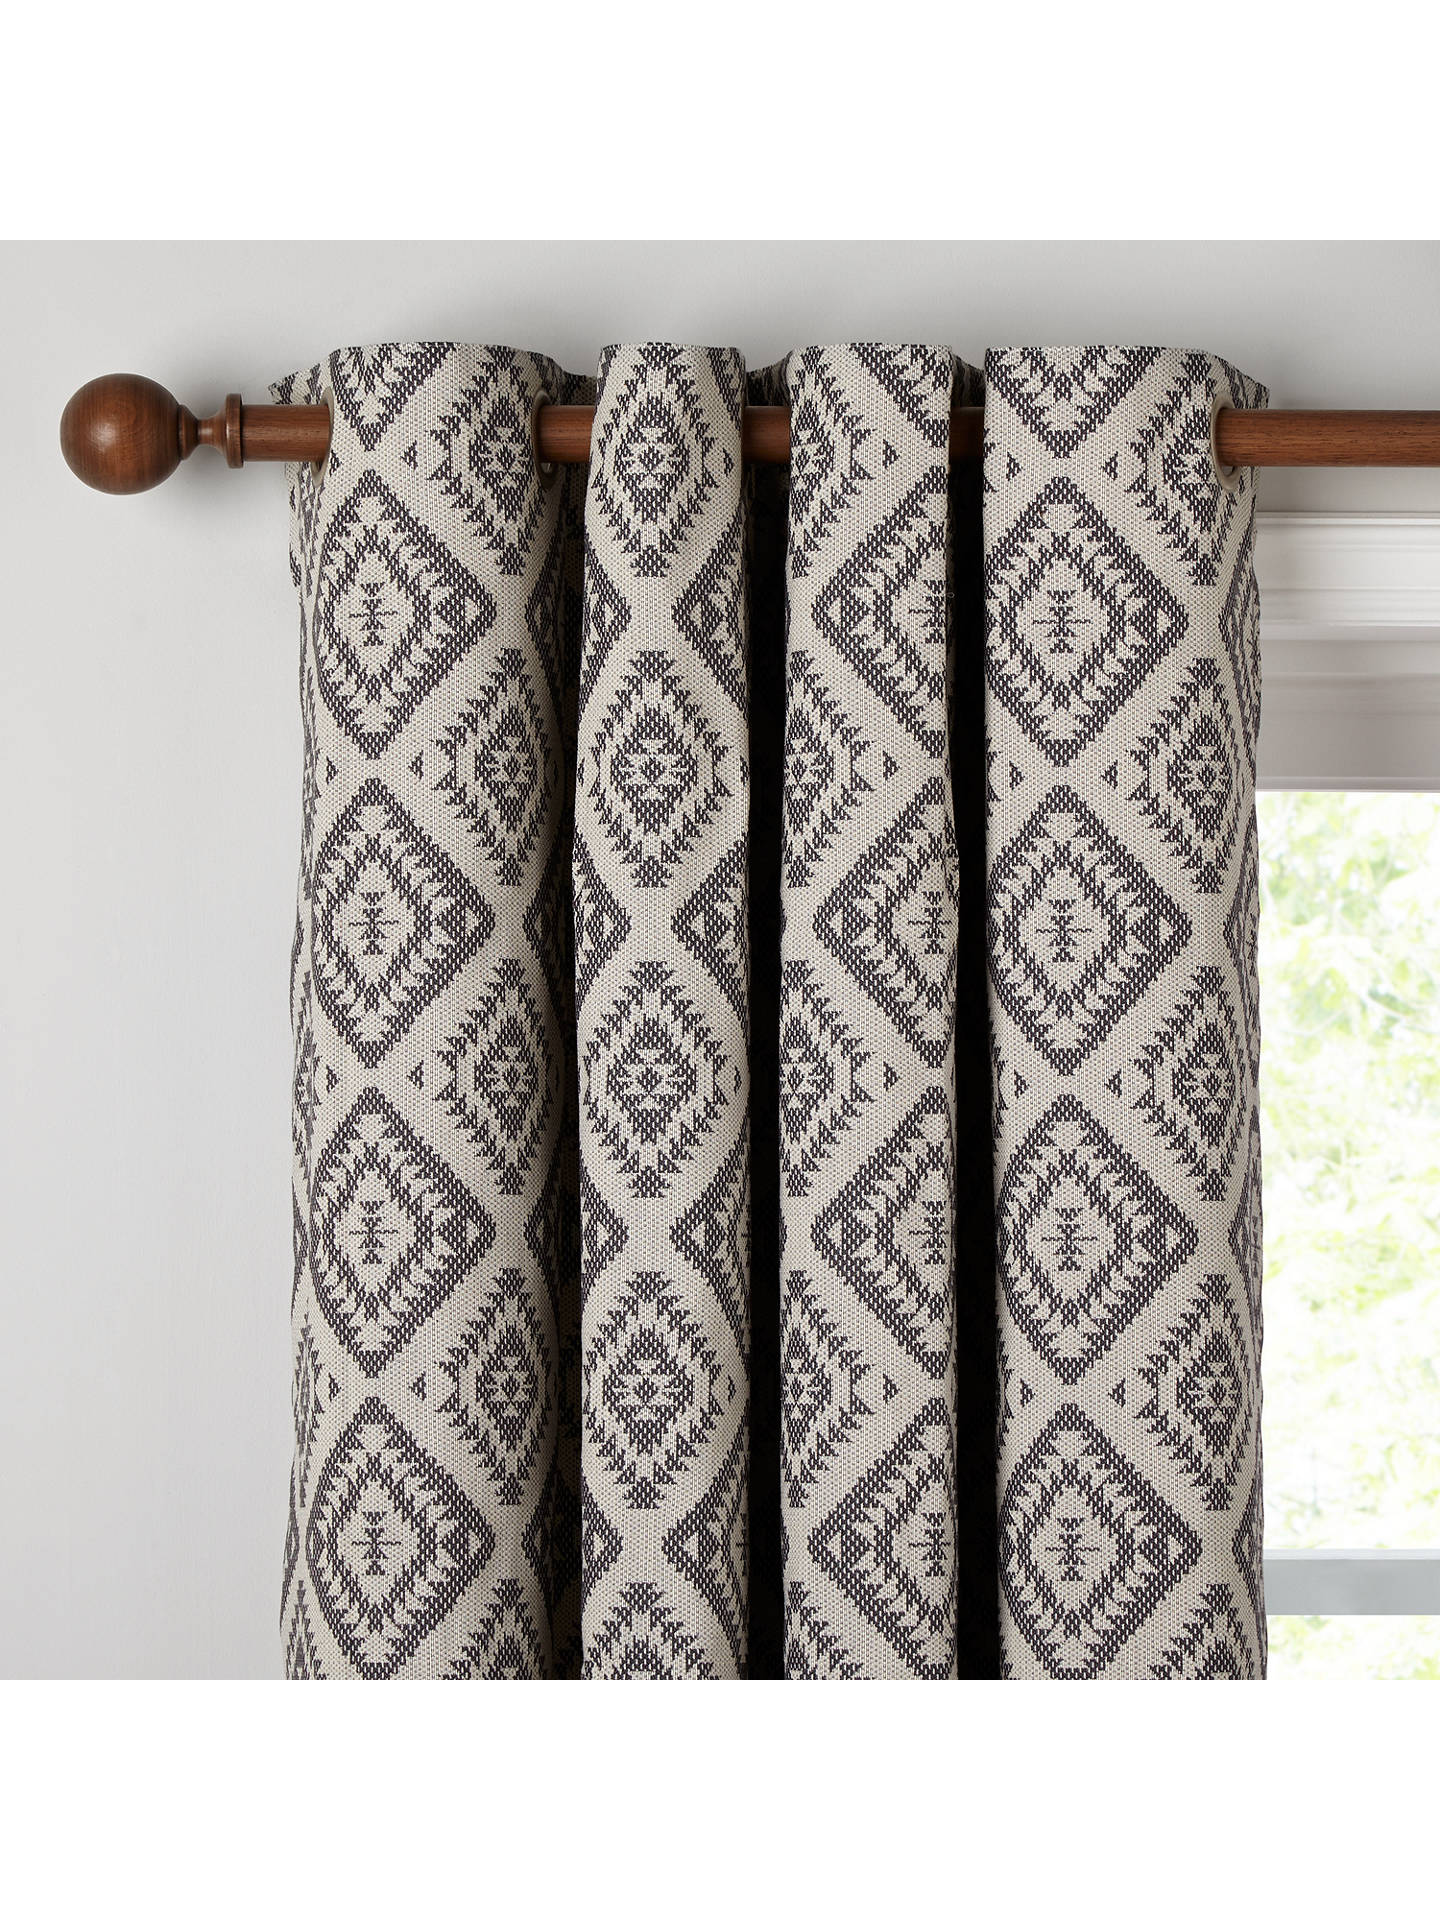 Buy John Lewis & Partners Native Weave Pair Lined Eyelet Curtains, Steel, W167 x Drop 228cm Online at johnlewis.com